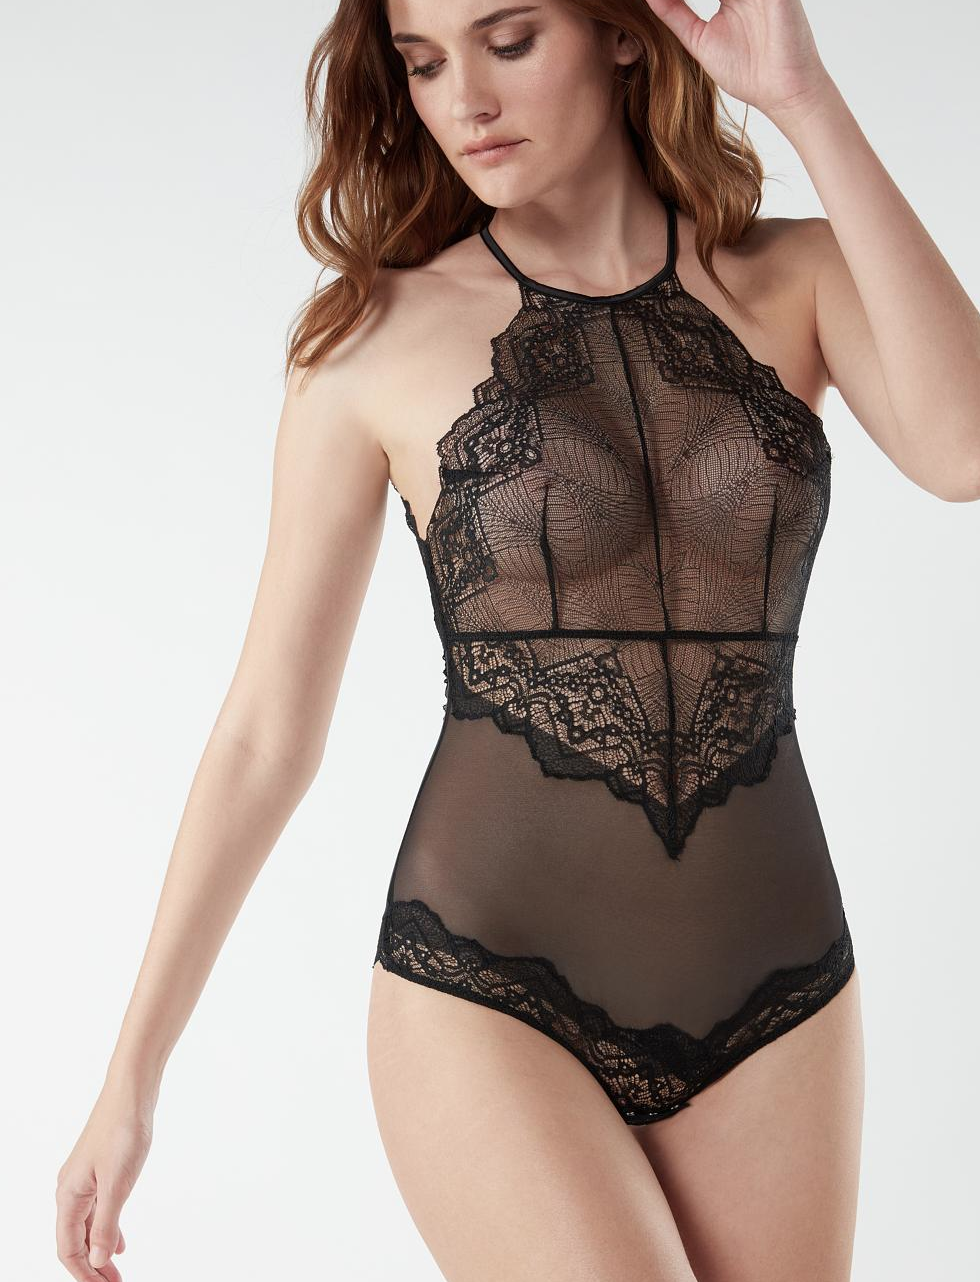 Body de Encaje y Tul Lady Sheer